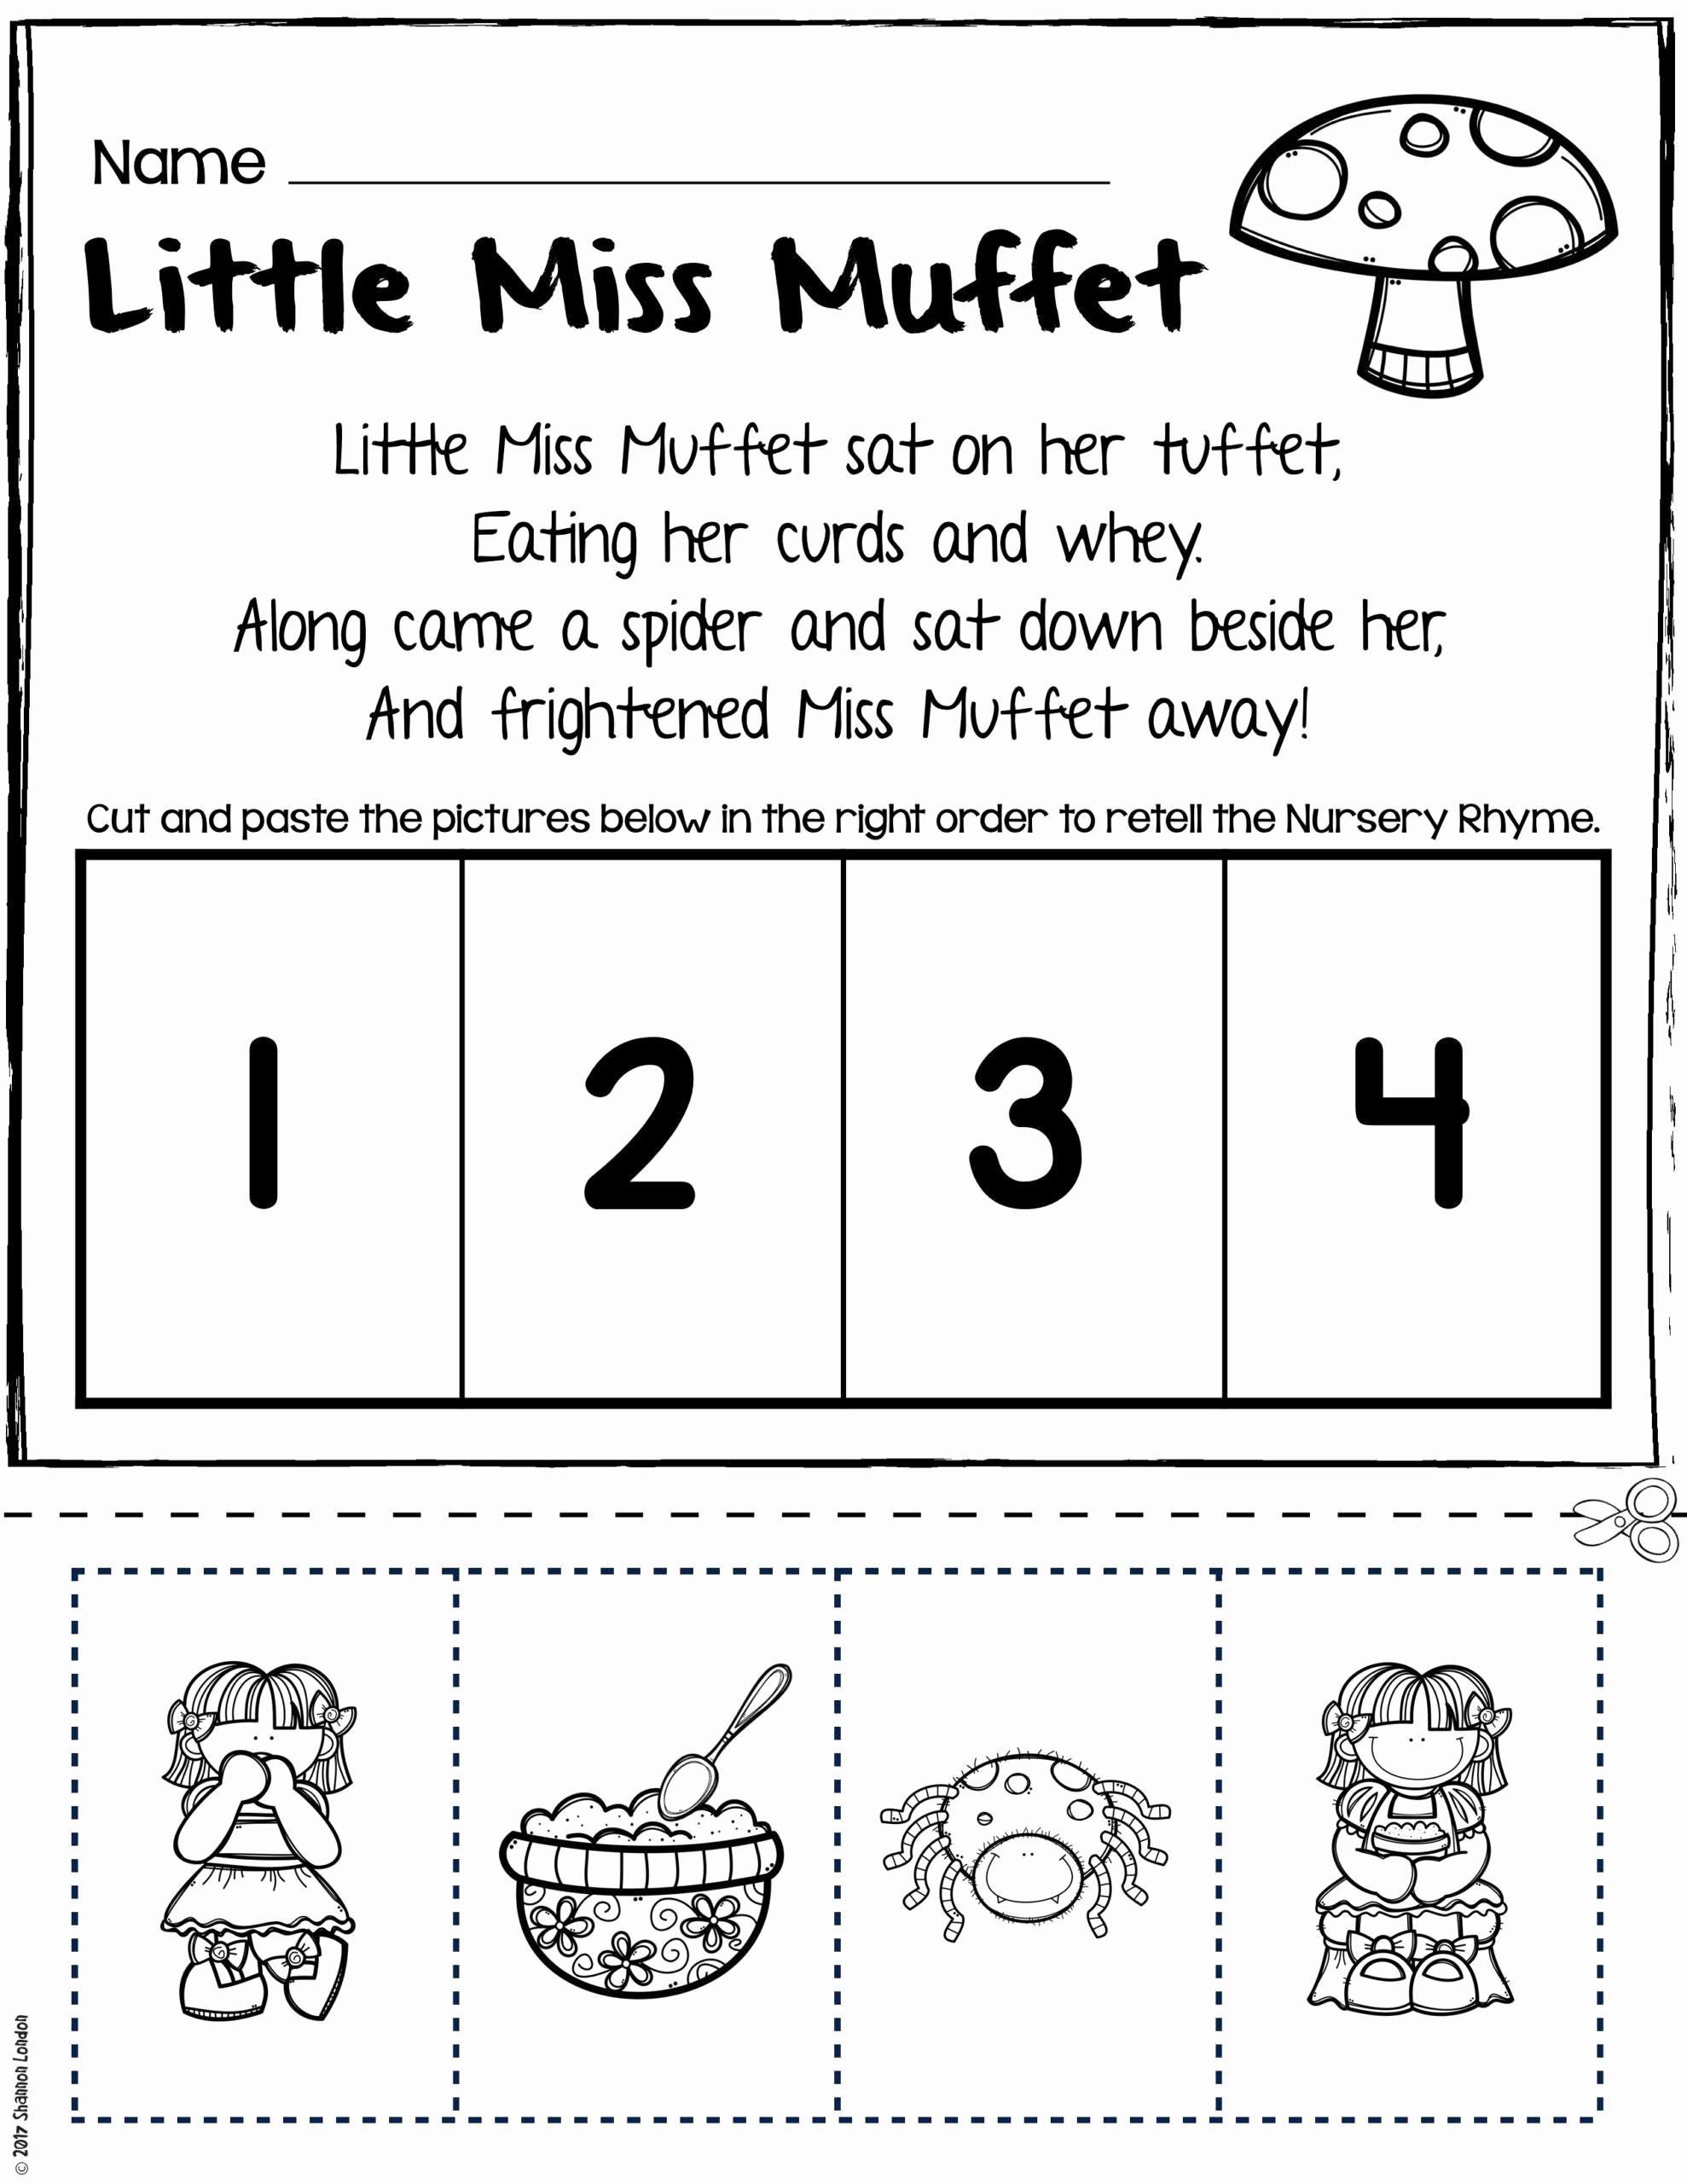 Rhyming Worksheets for Preschoolers Best Of Rhyming Worksheets for Kindergarten